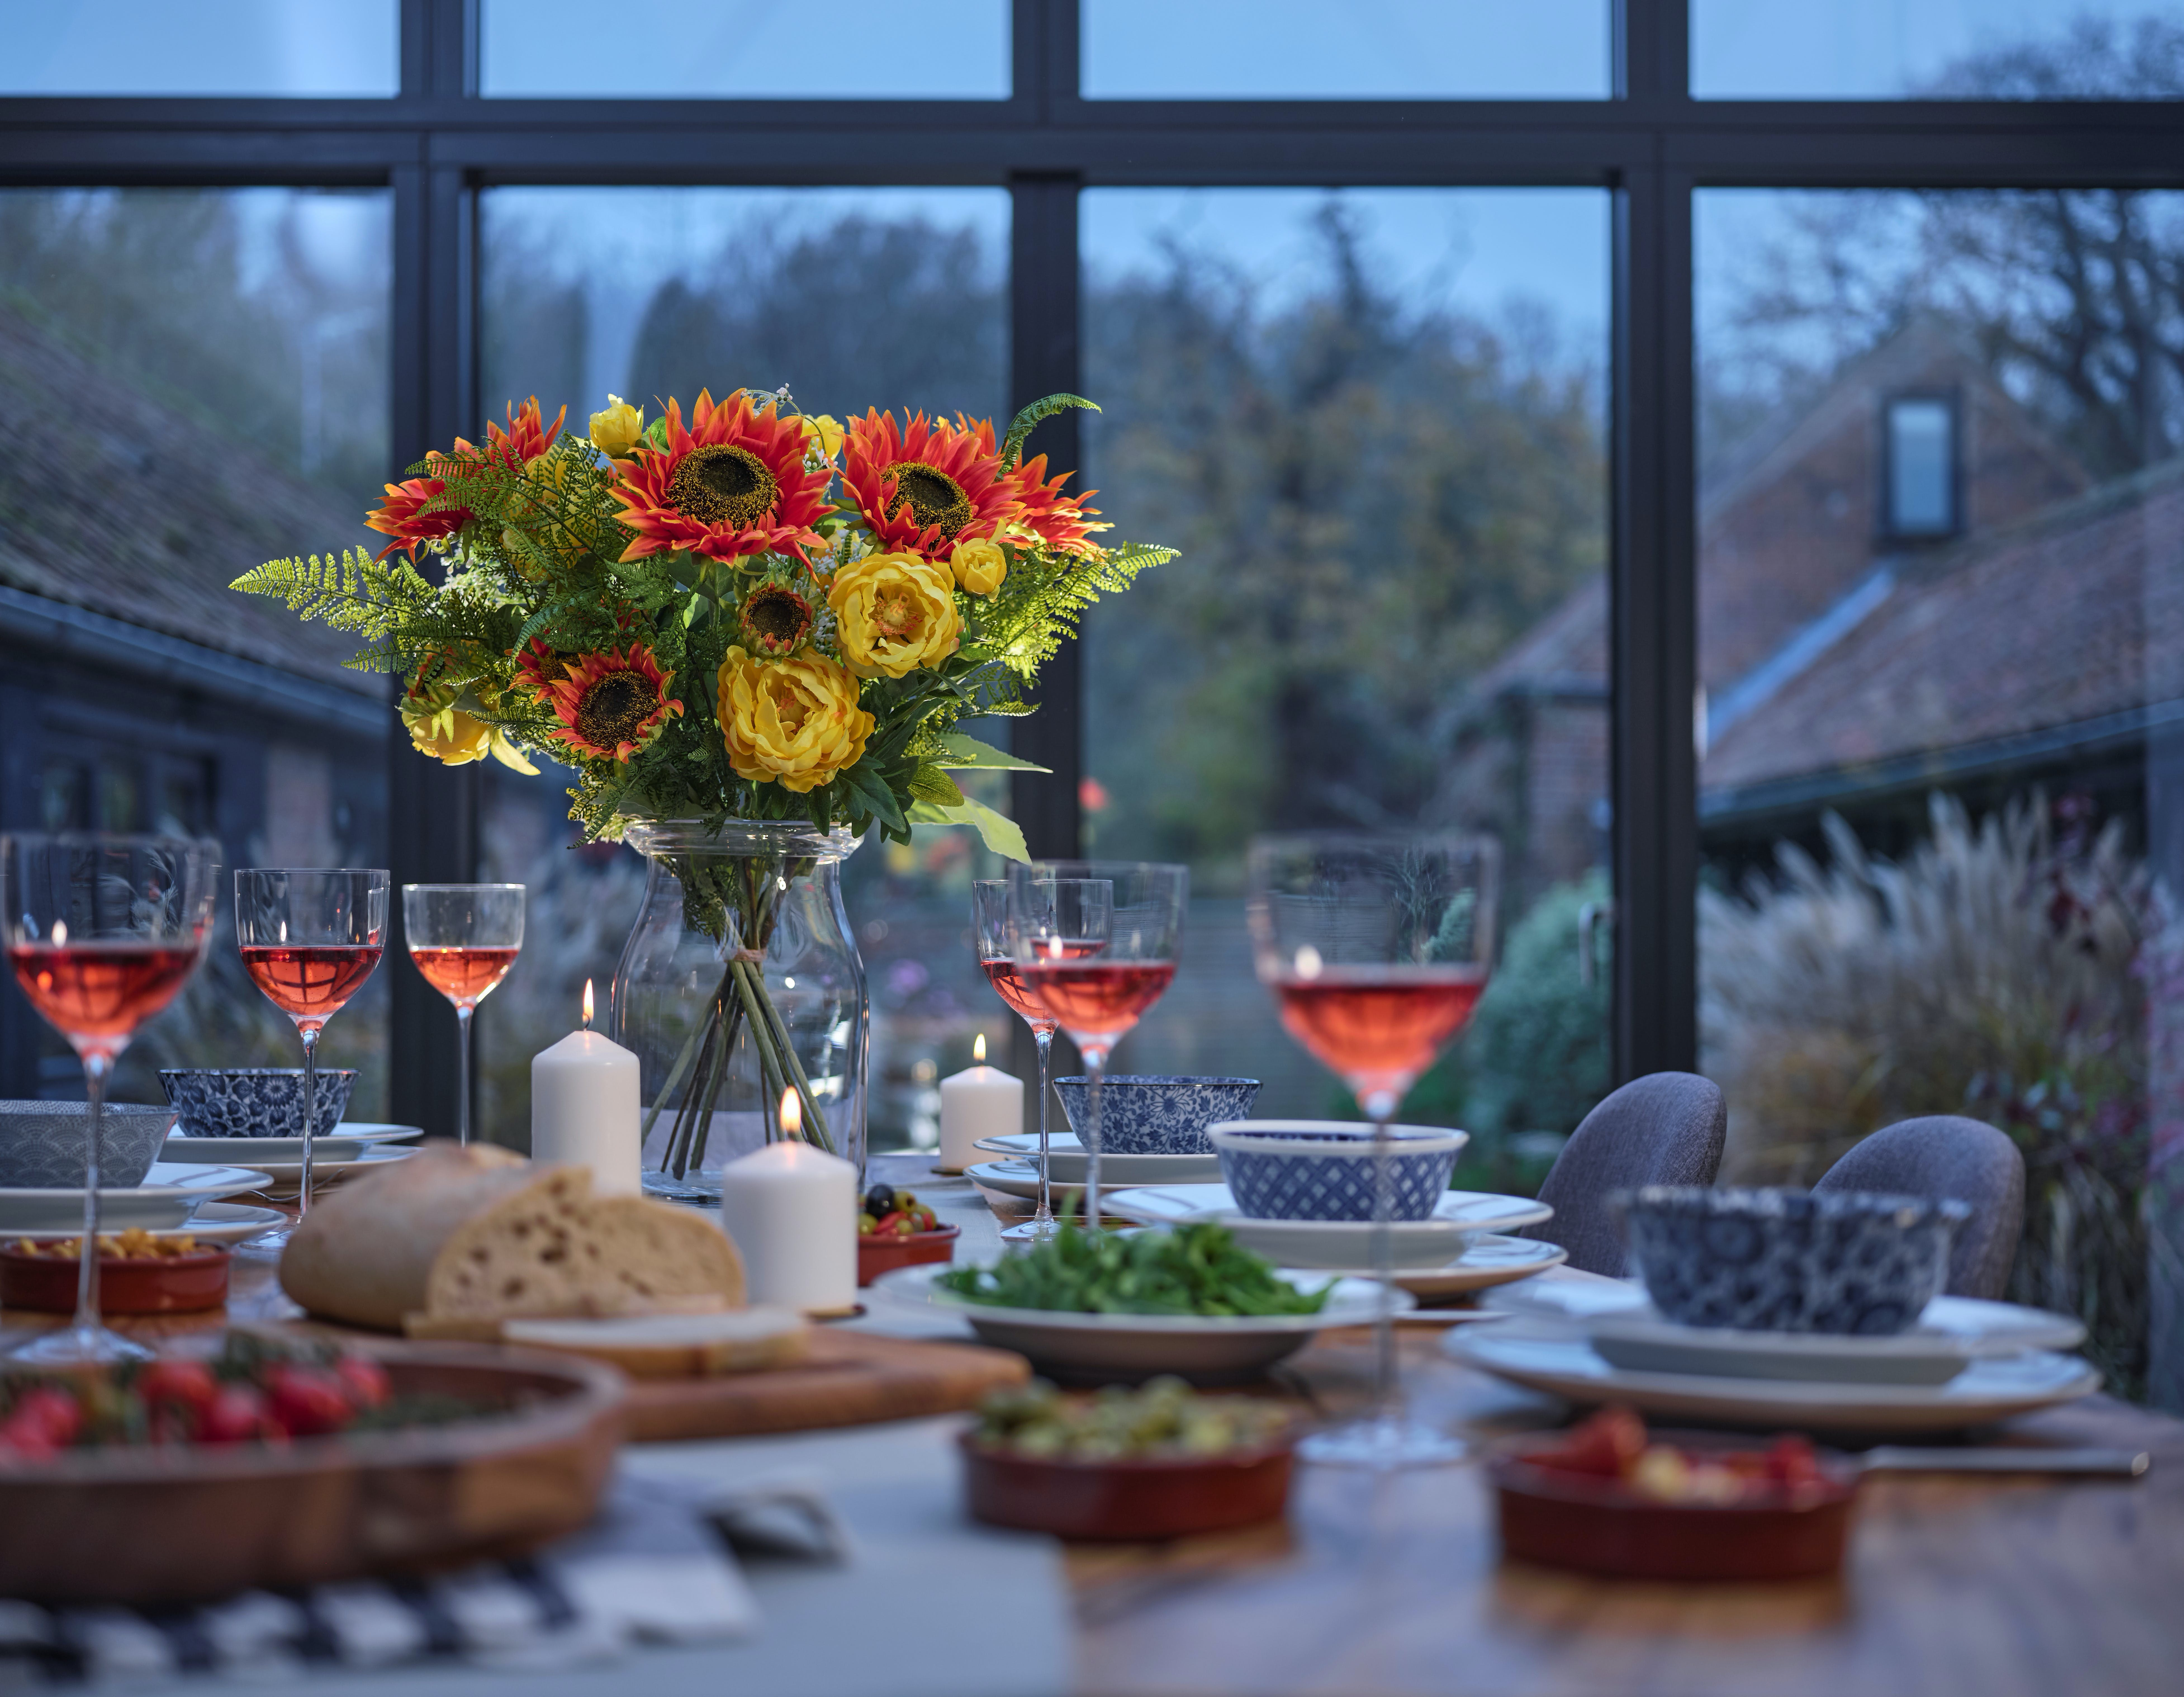 Artificial tequila sunrise flower bouquet on dining table